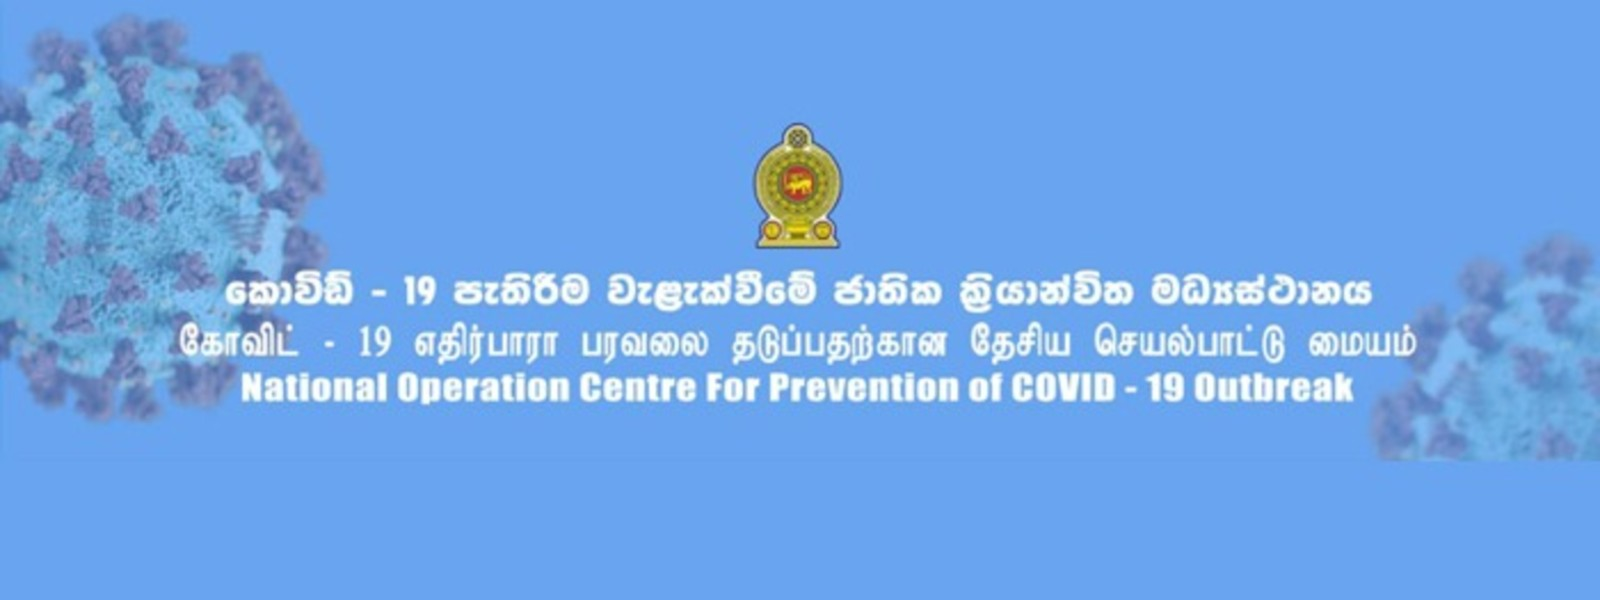 9,740 people are currently undergoing quarantine for COVID-19